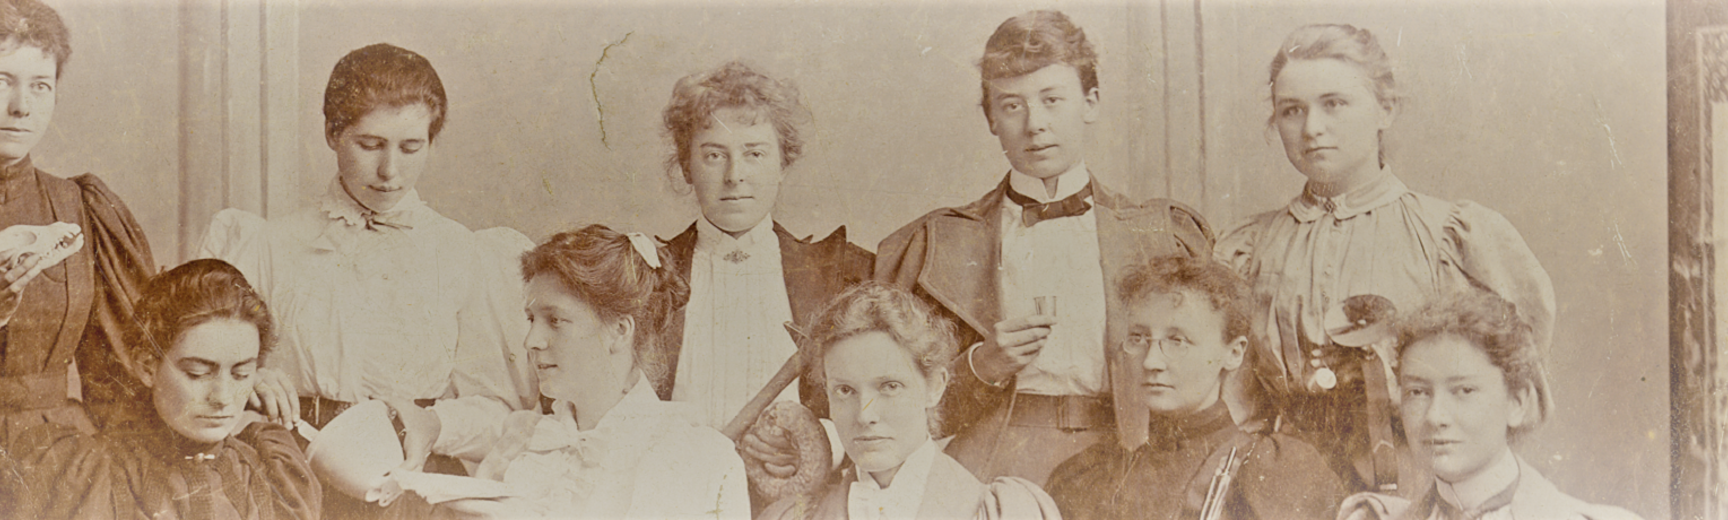 Women Scientists c 1890